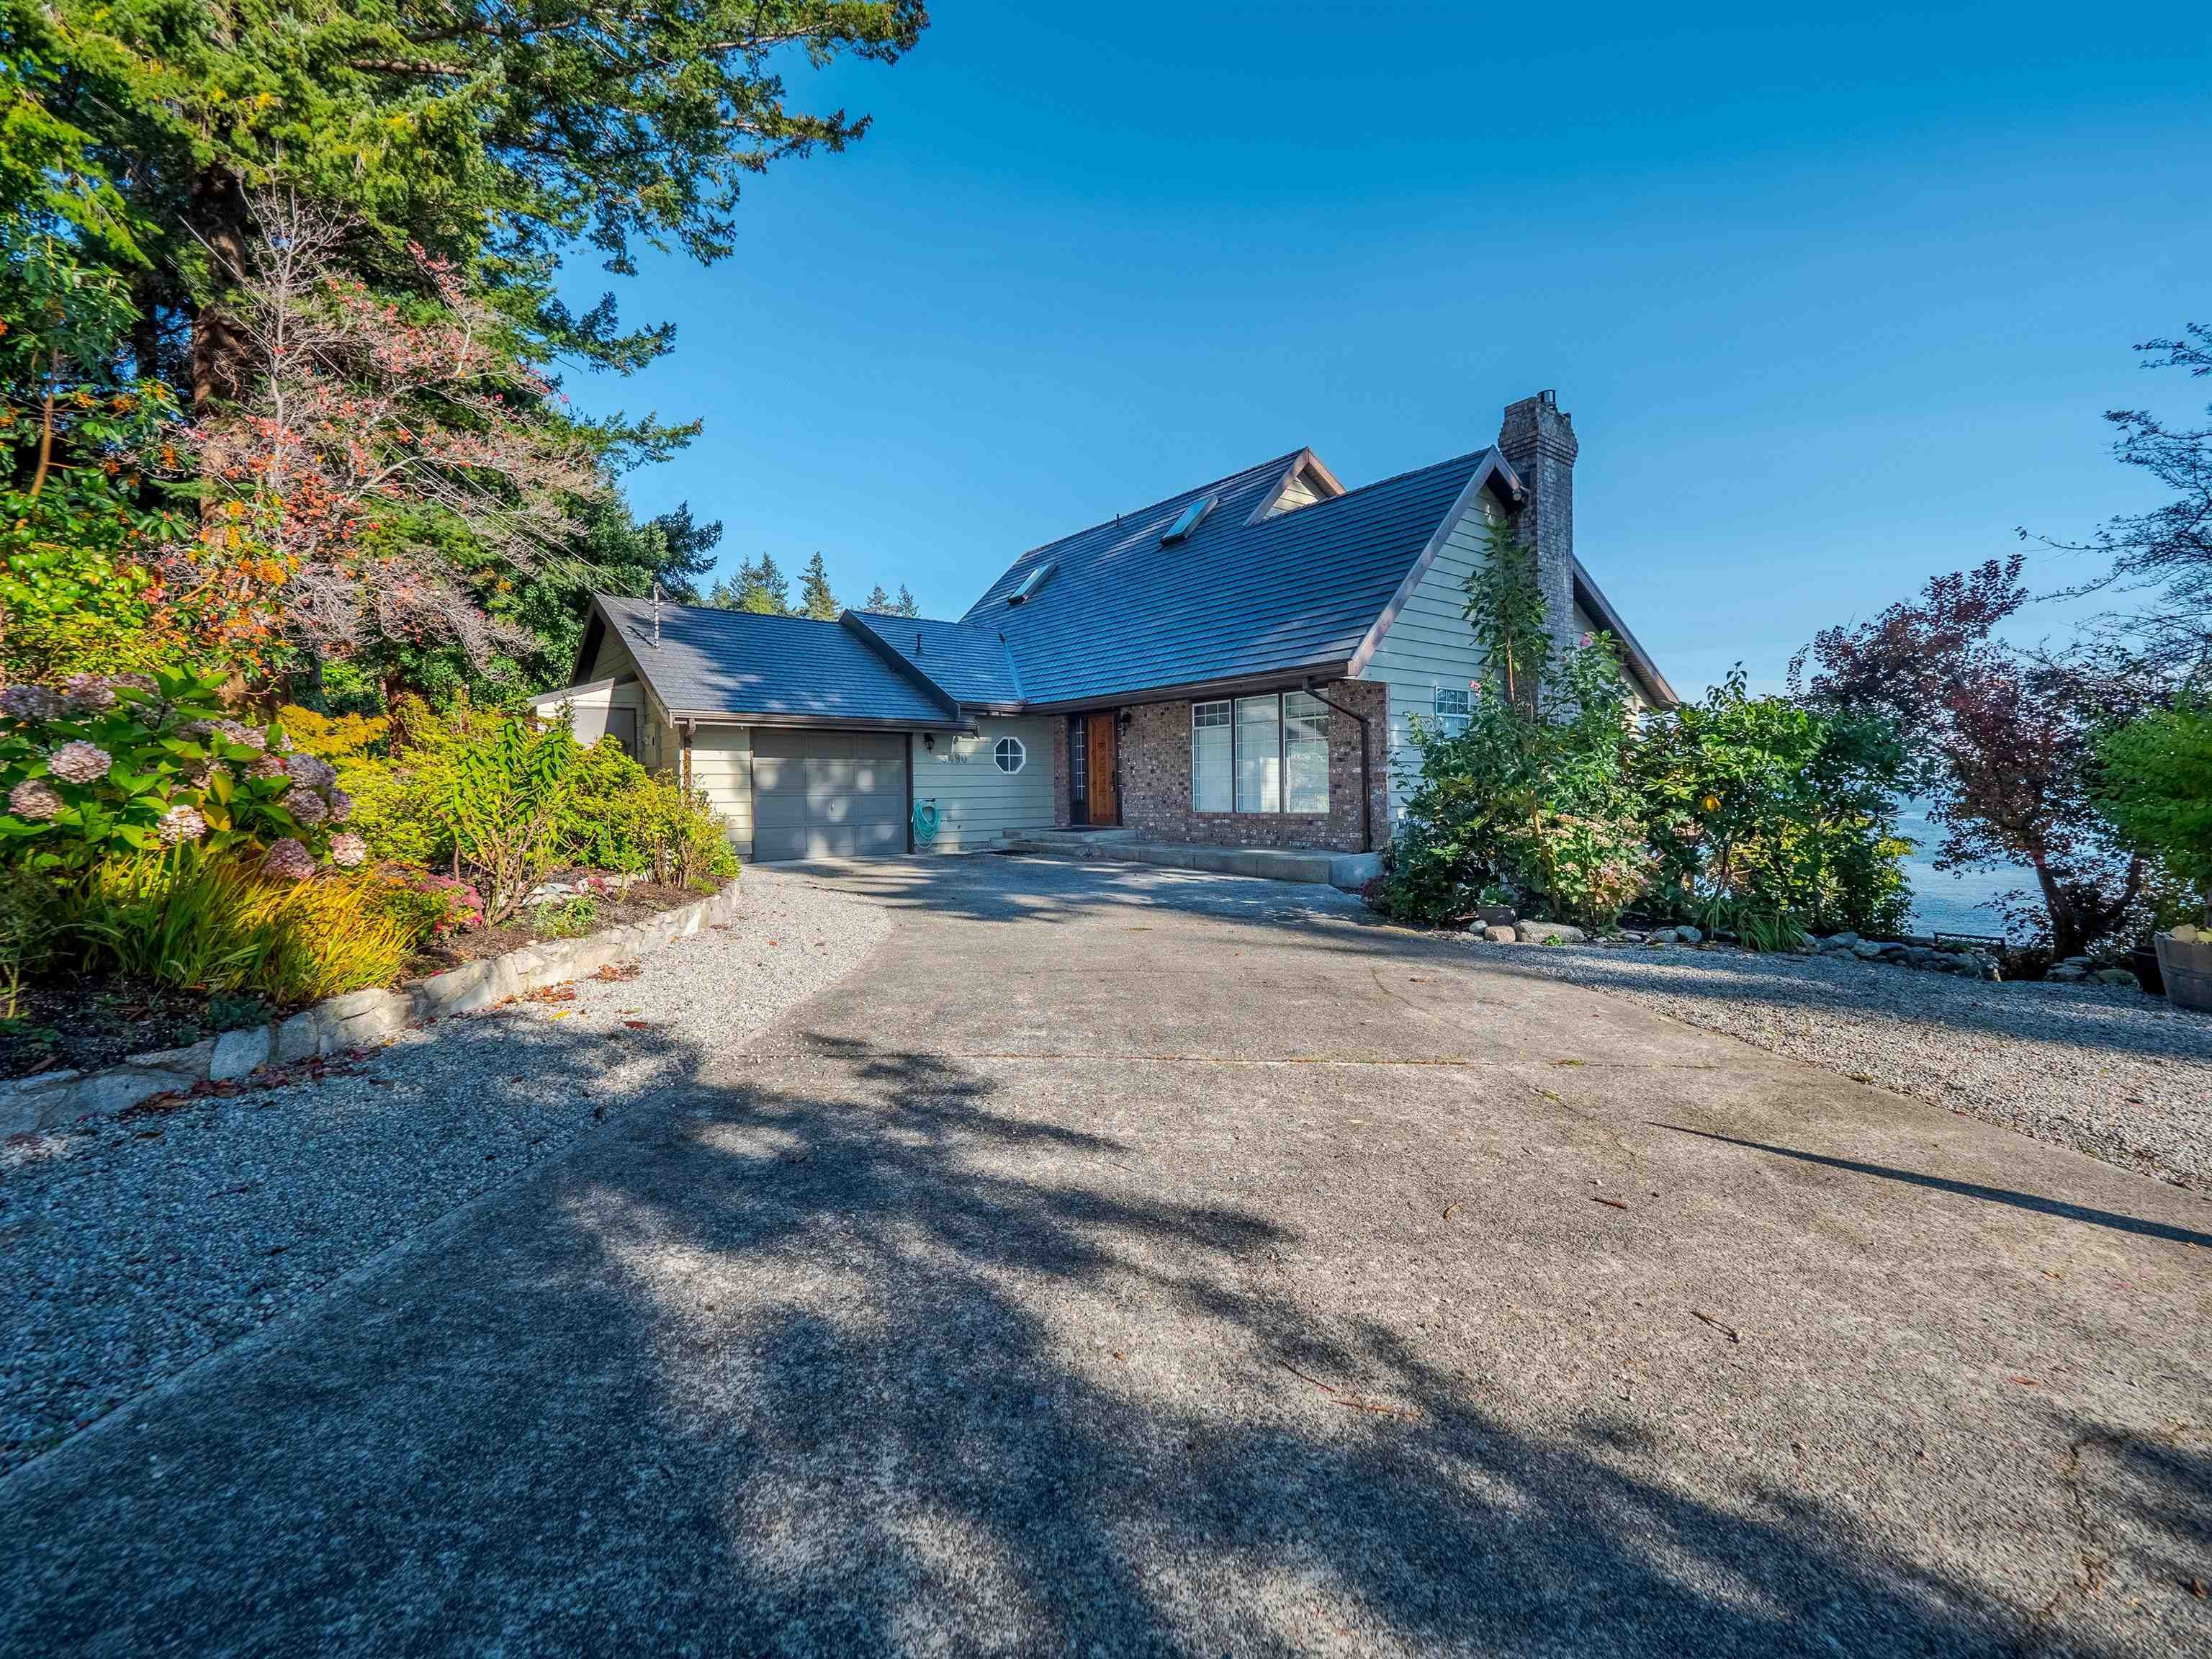 5490 HILL ROAD - Sechelt District House/Single Family for sale, 3 Bedrooms (R2626264)